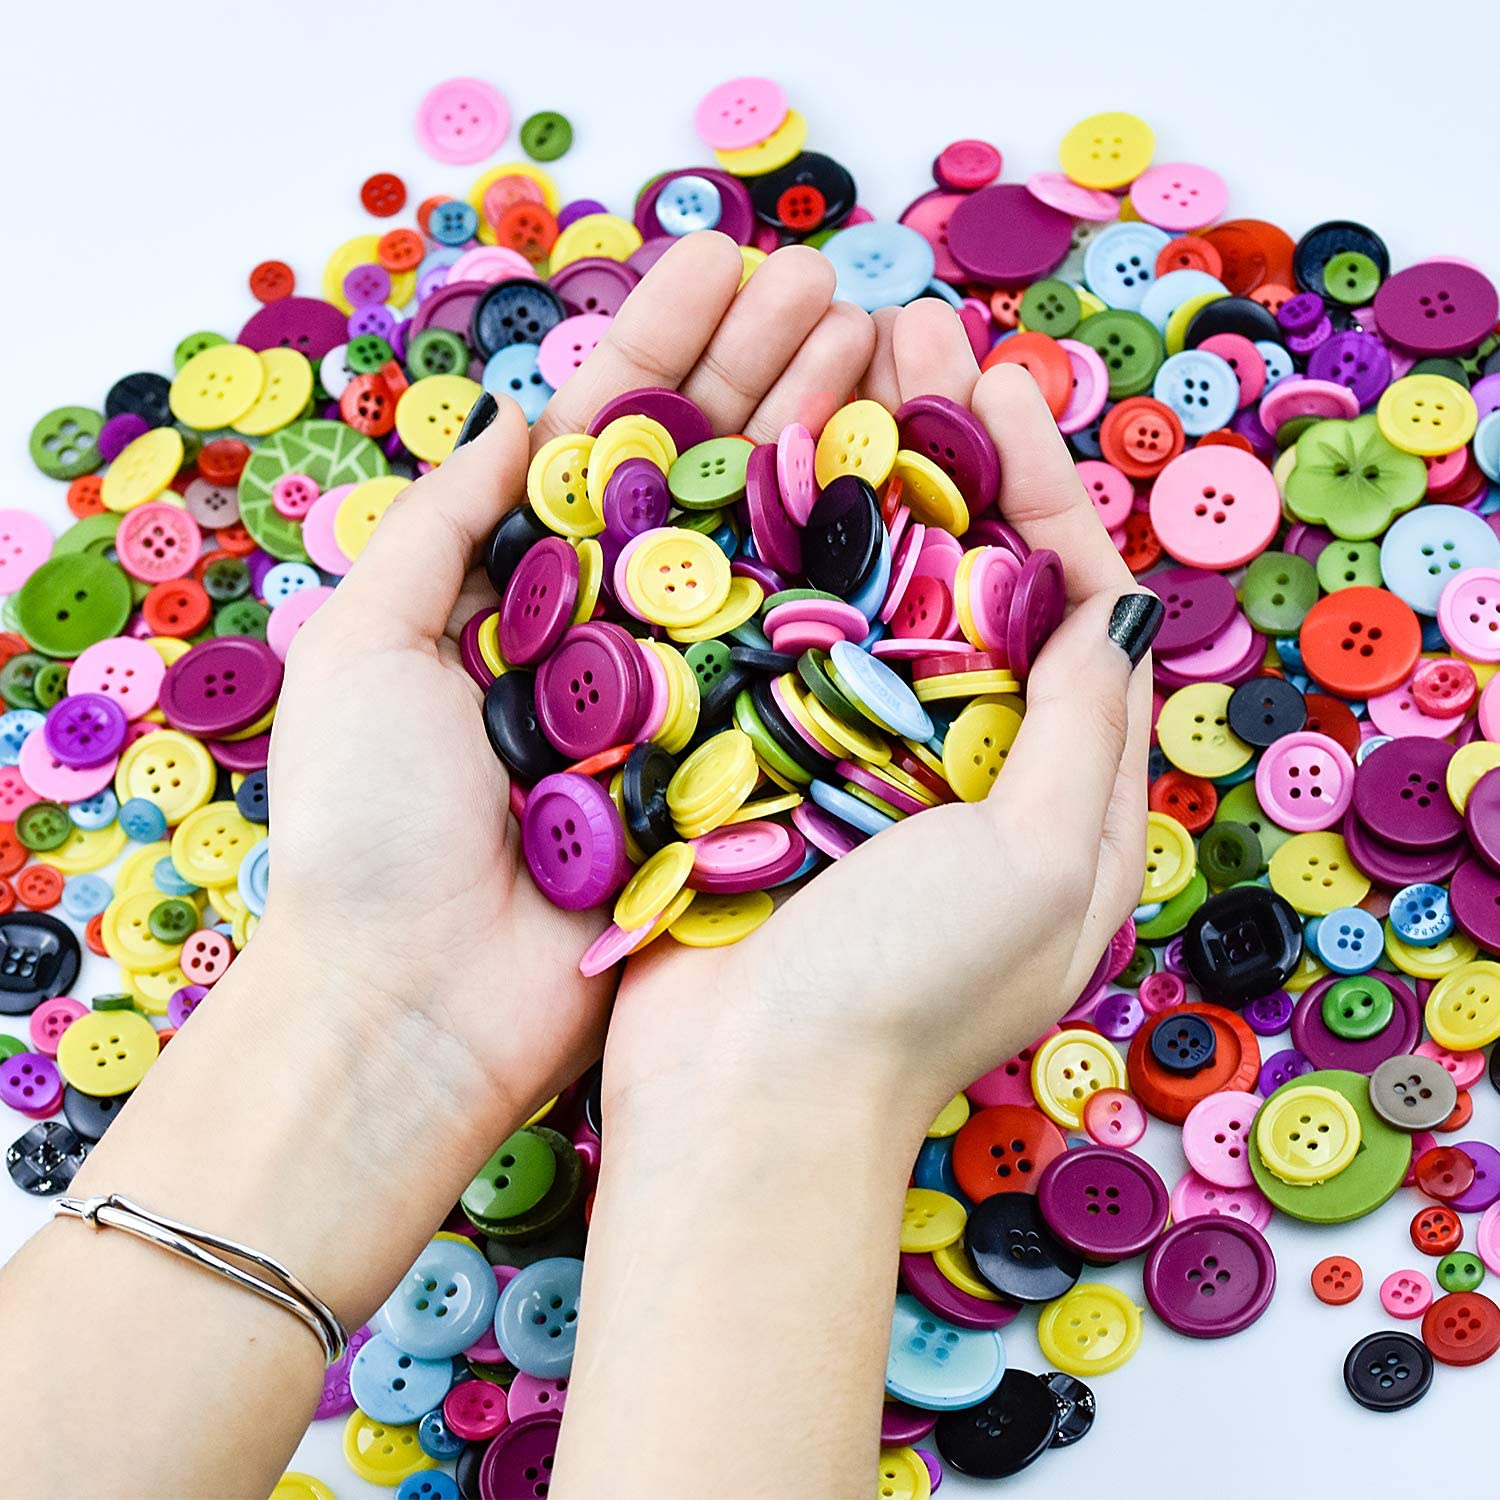 Wandefol 1000pcs Buttons Colorful Buttons Mixed Color Resin Buttons for All Craft Activities,